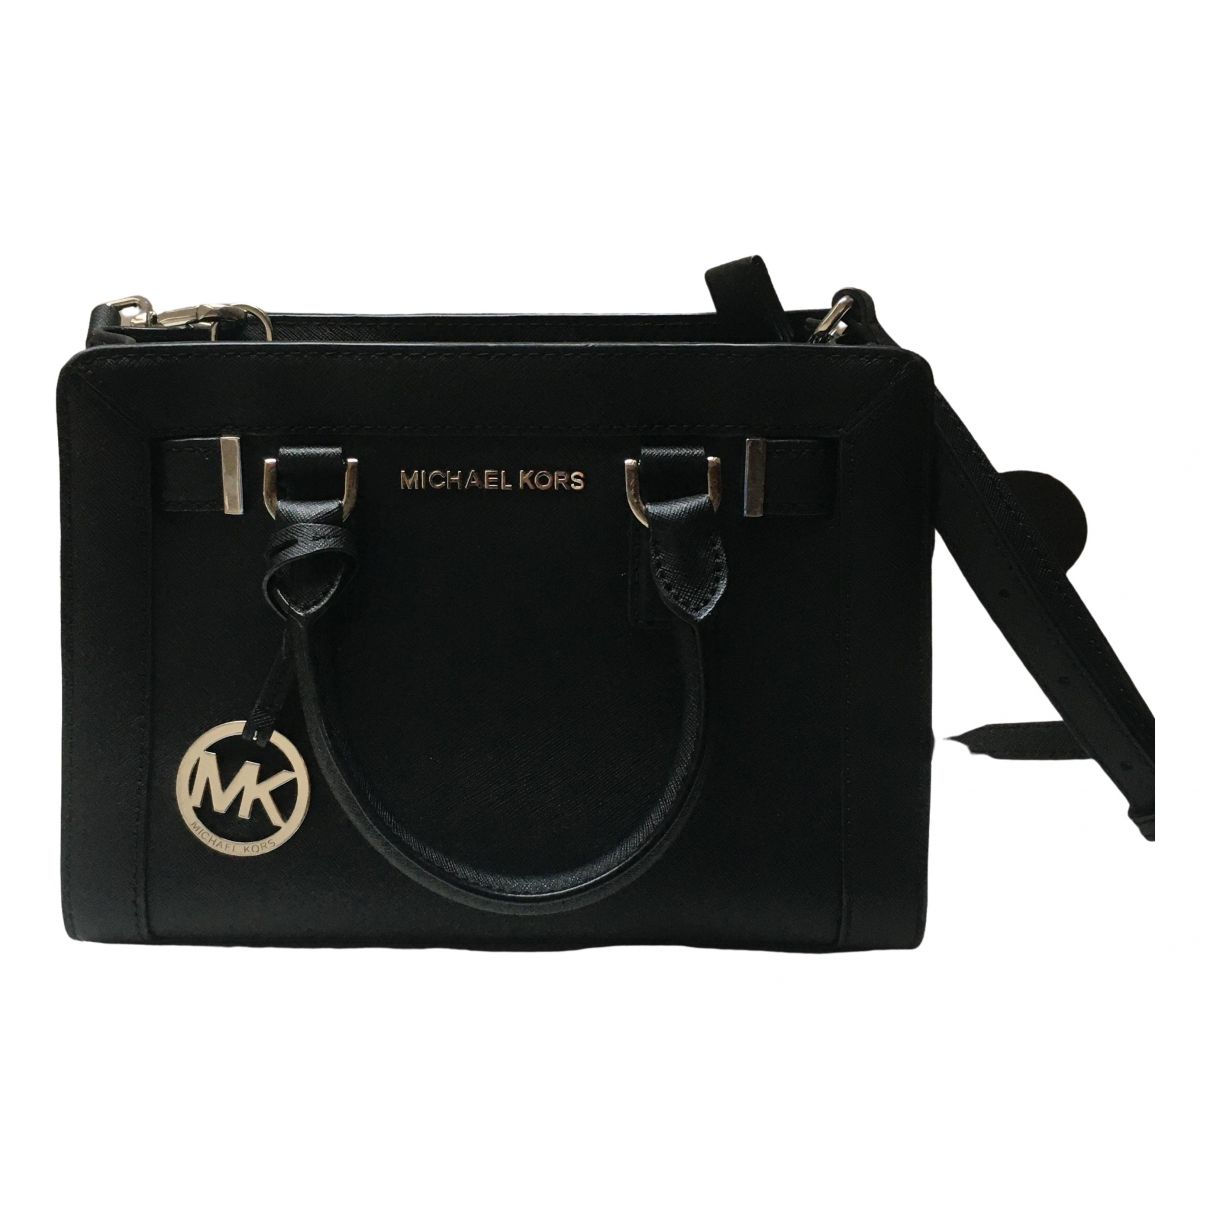 Michael Kors Dillon Black Leather handbag for Women \N